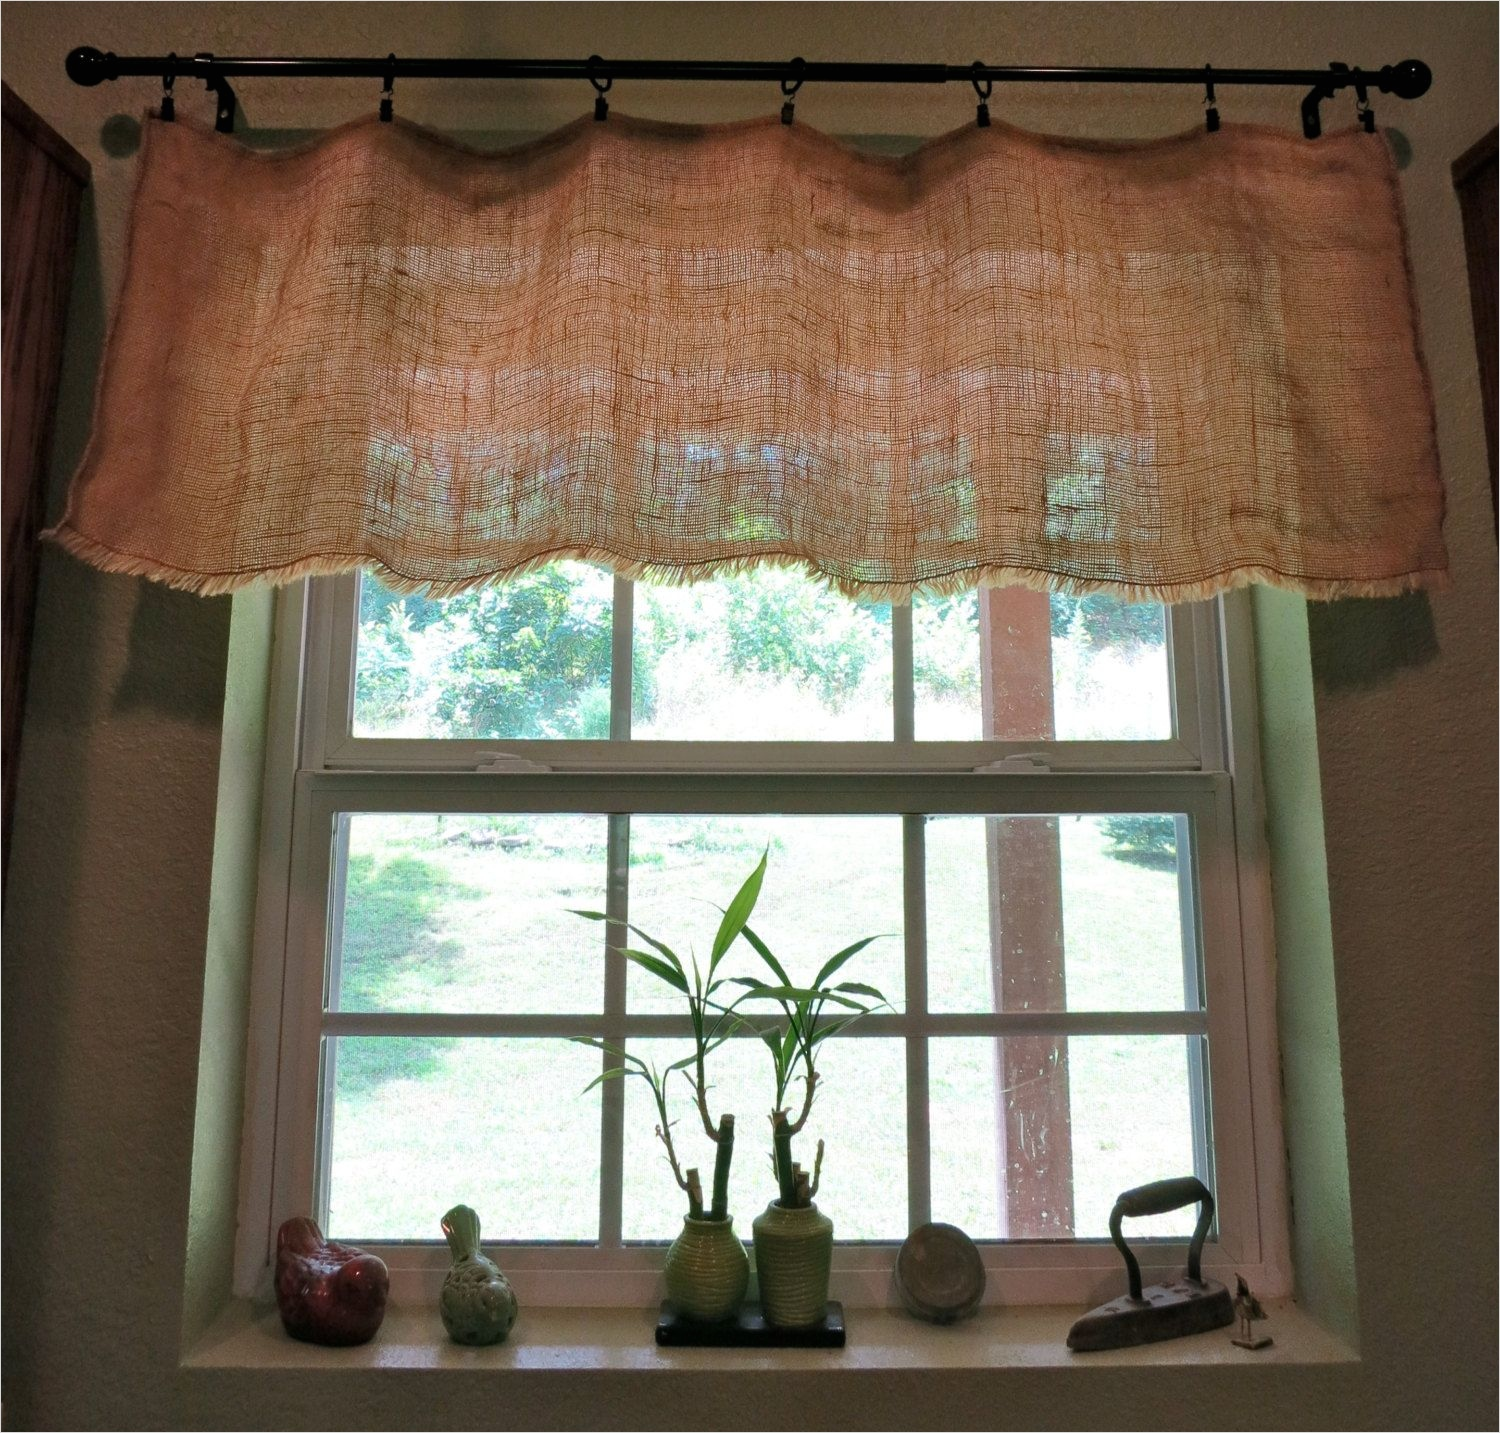 41 Perfect Farmhouse Country Kitchen Curtain Valances 87 Shabby Chic Country Cottage Chic Farmhouse Rustic by Funkyflamango $20 00 4